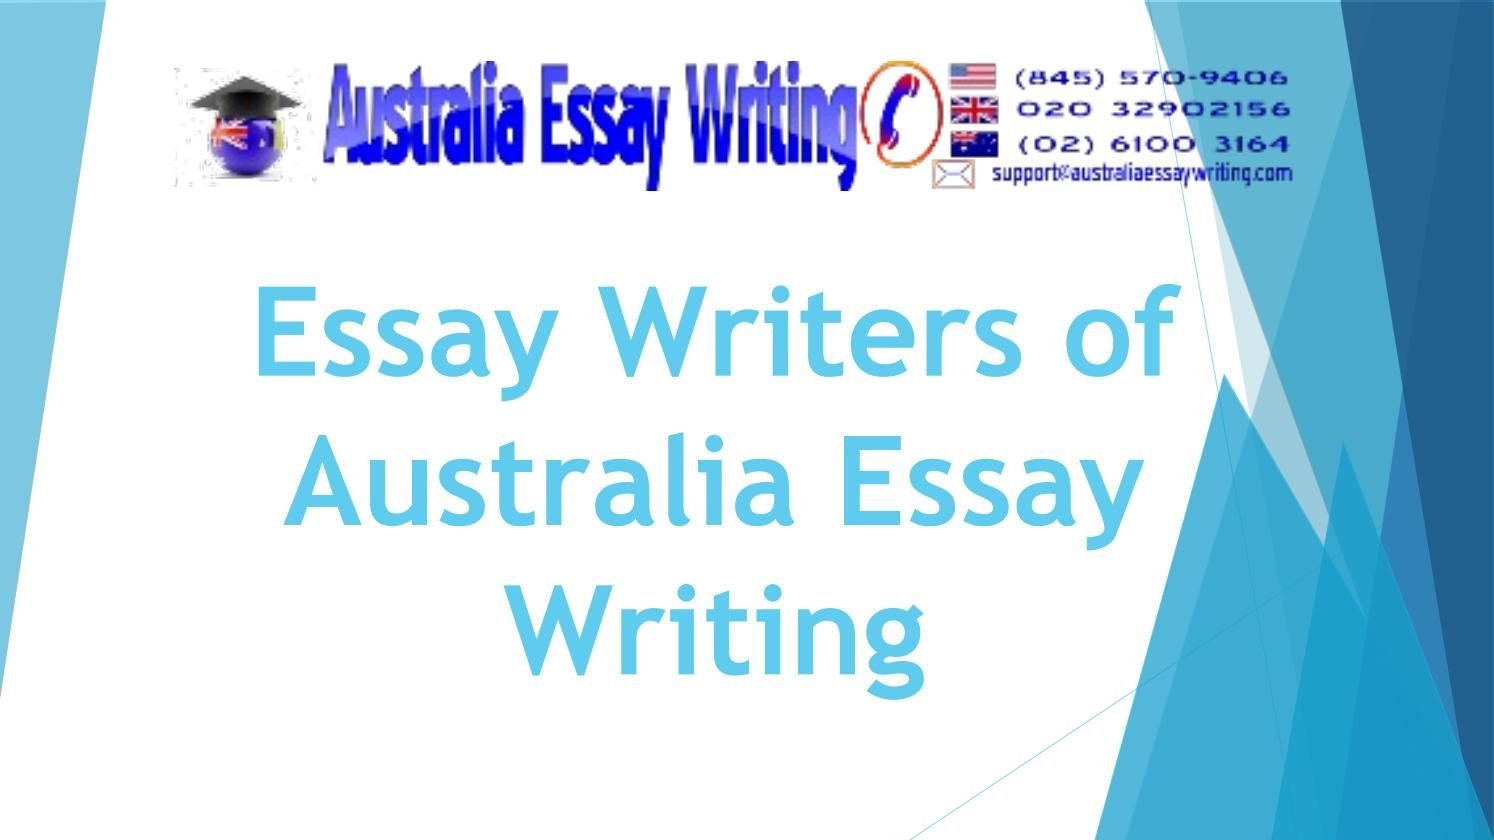 Essay writing companies in australia